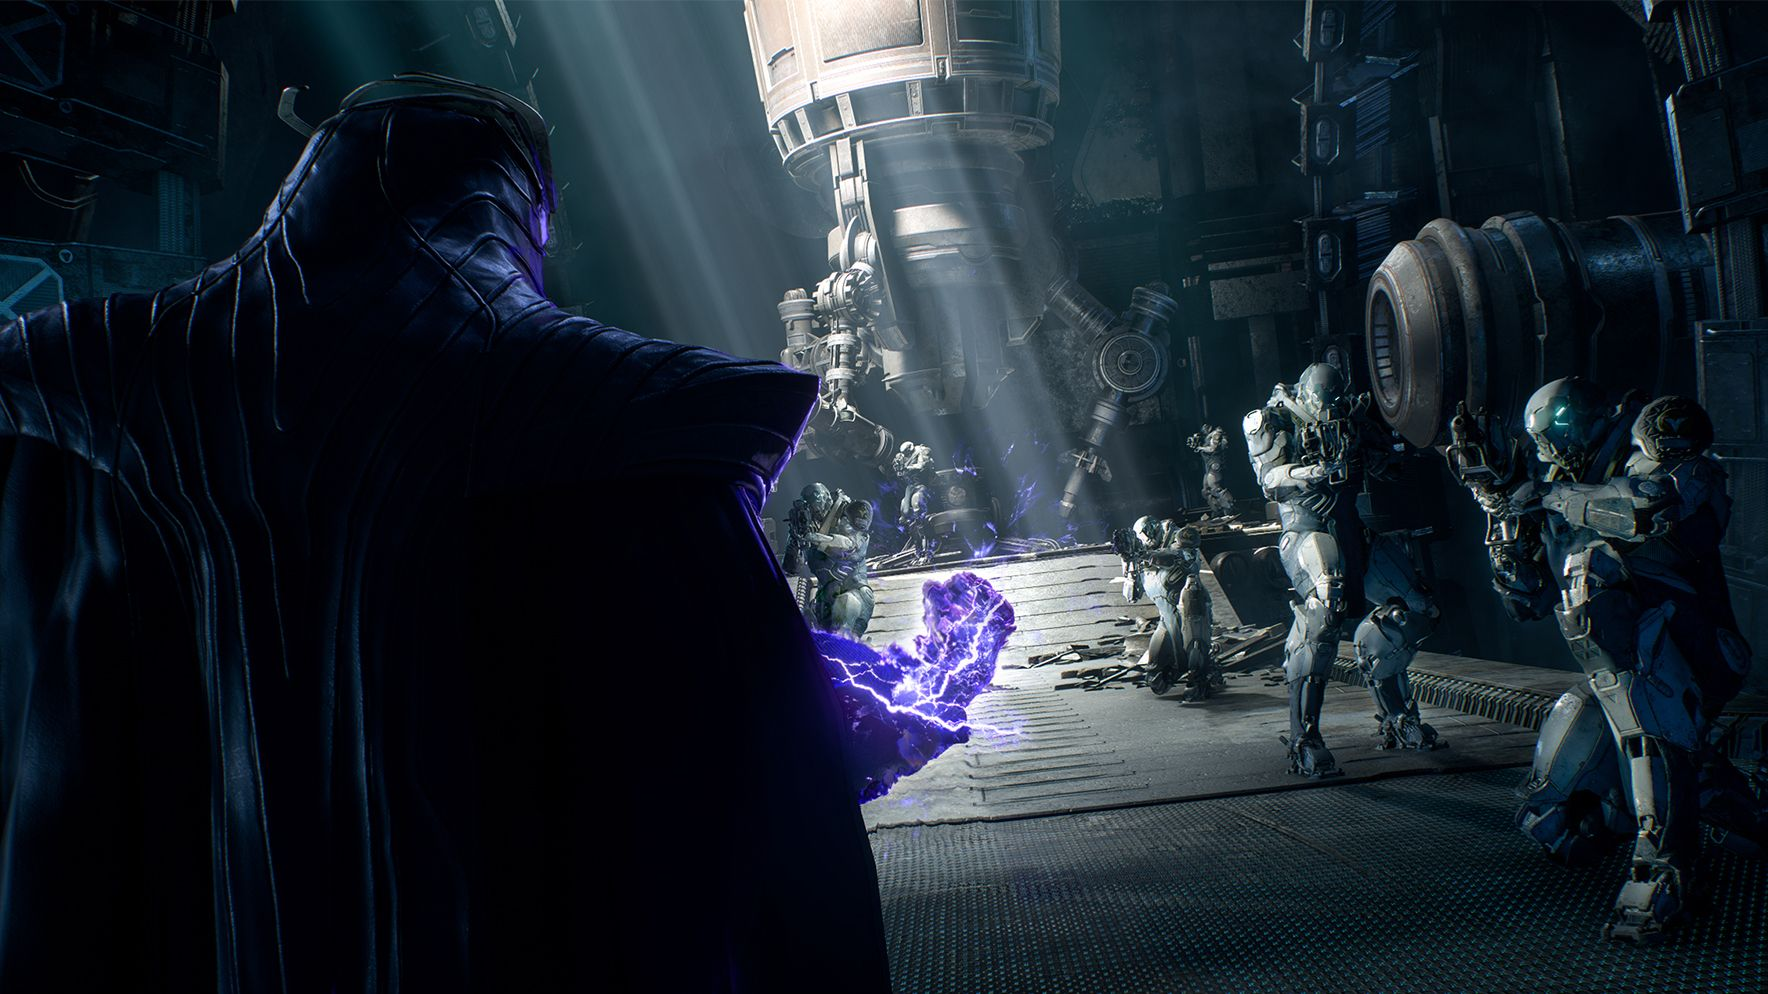 Best games 2020 most anticipated titles for PS4